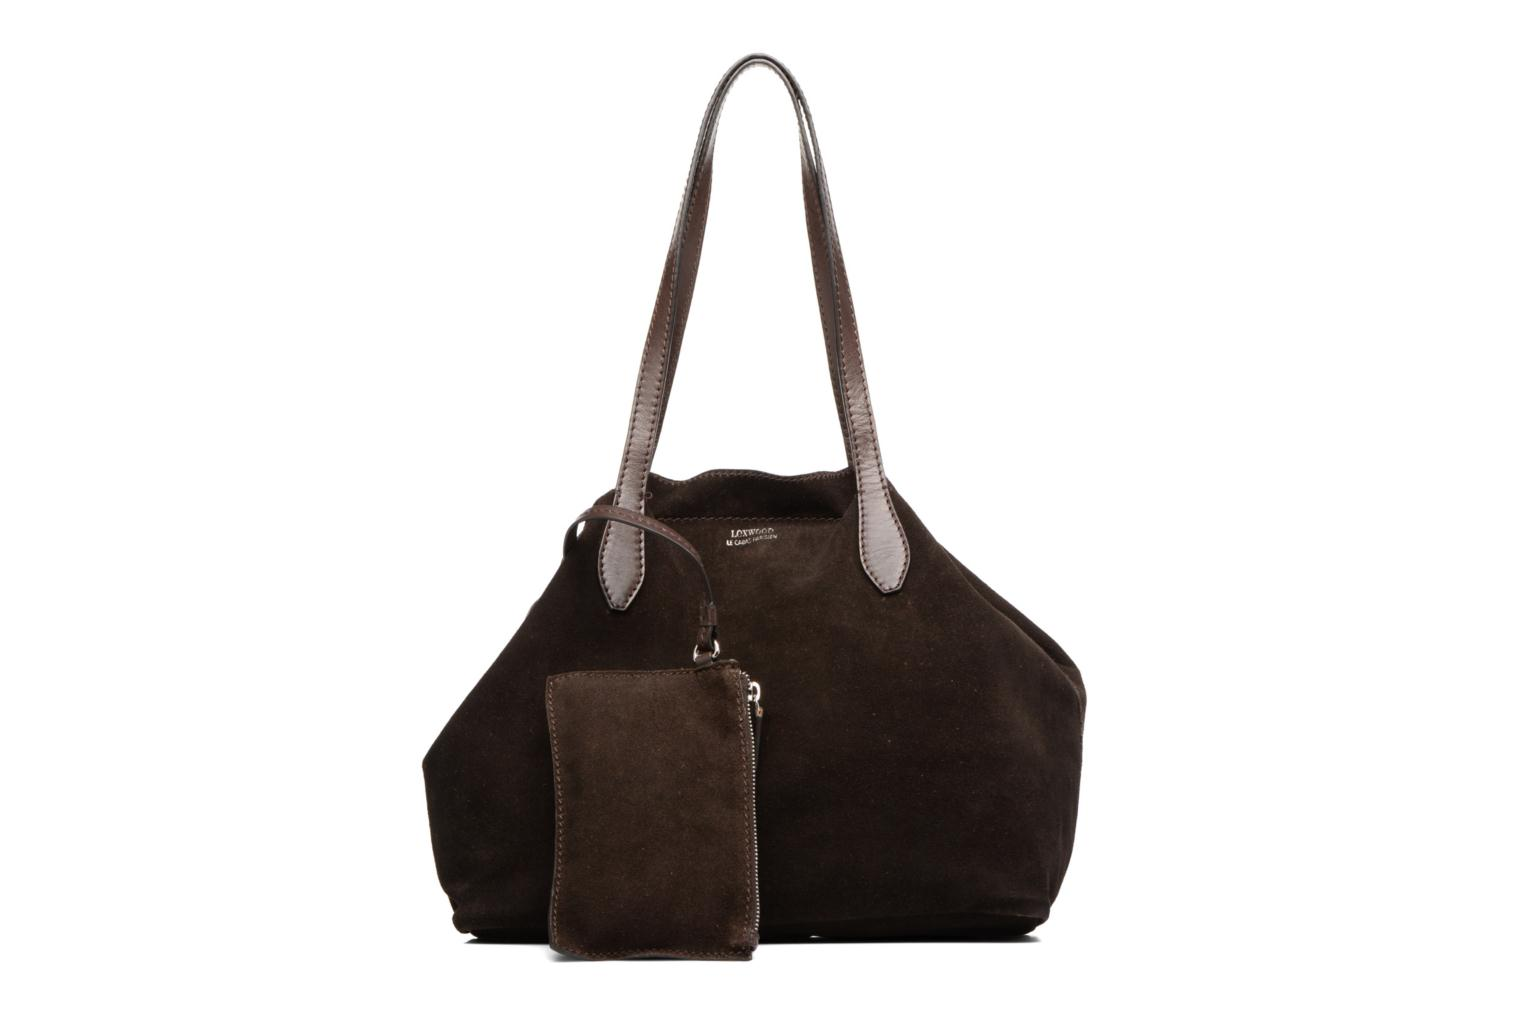 Handbags Loxwood Sac Shopper Brown view from the left